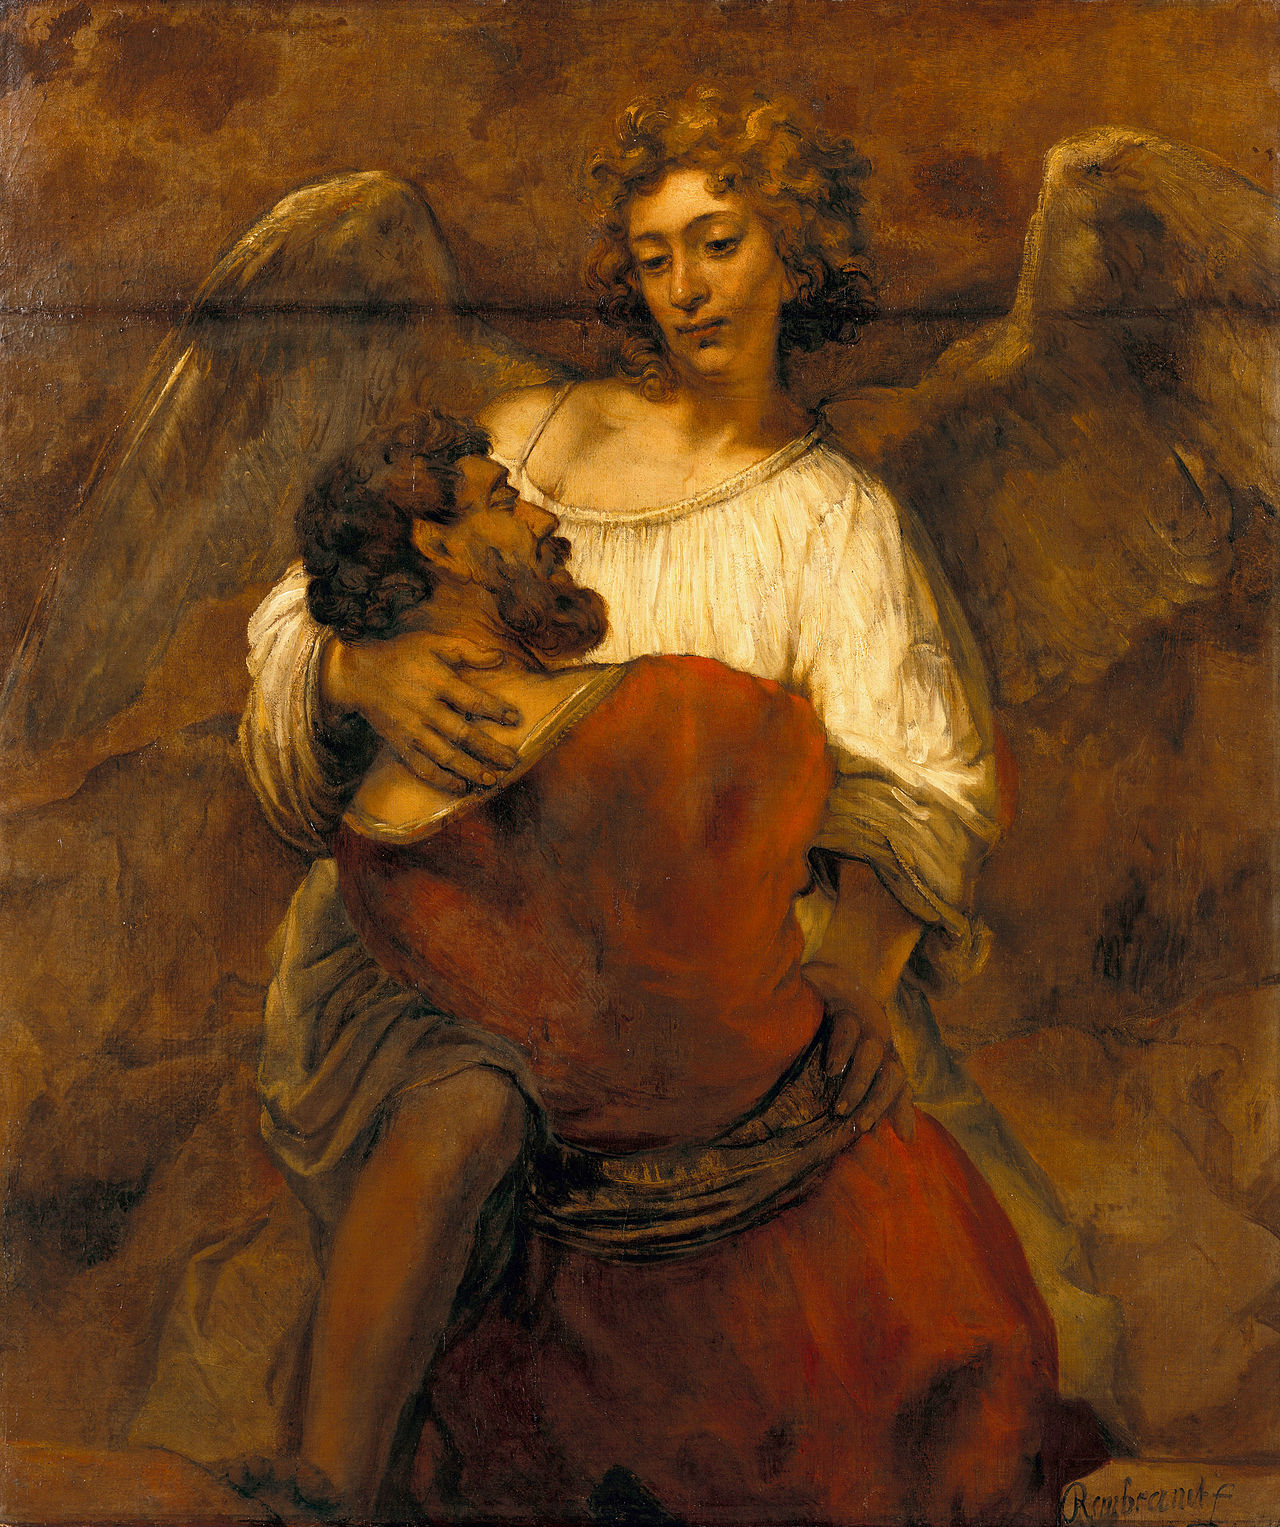 1280px-Rembrandt_-_Jacob_Wrestling_with_the_Angel_-_Google_Art_Project